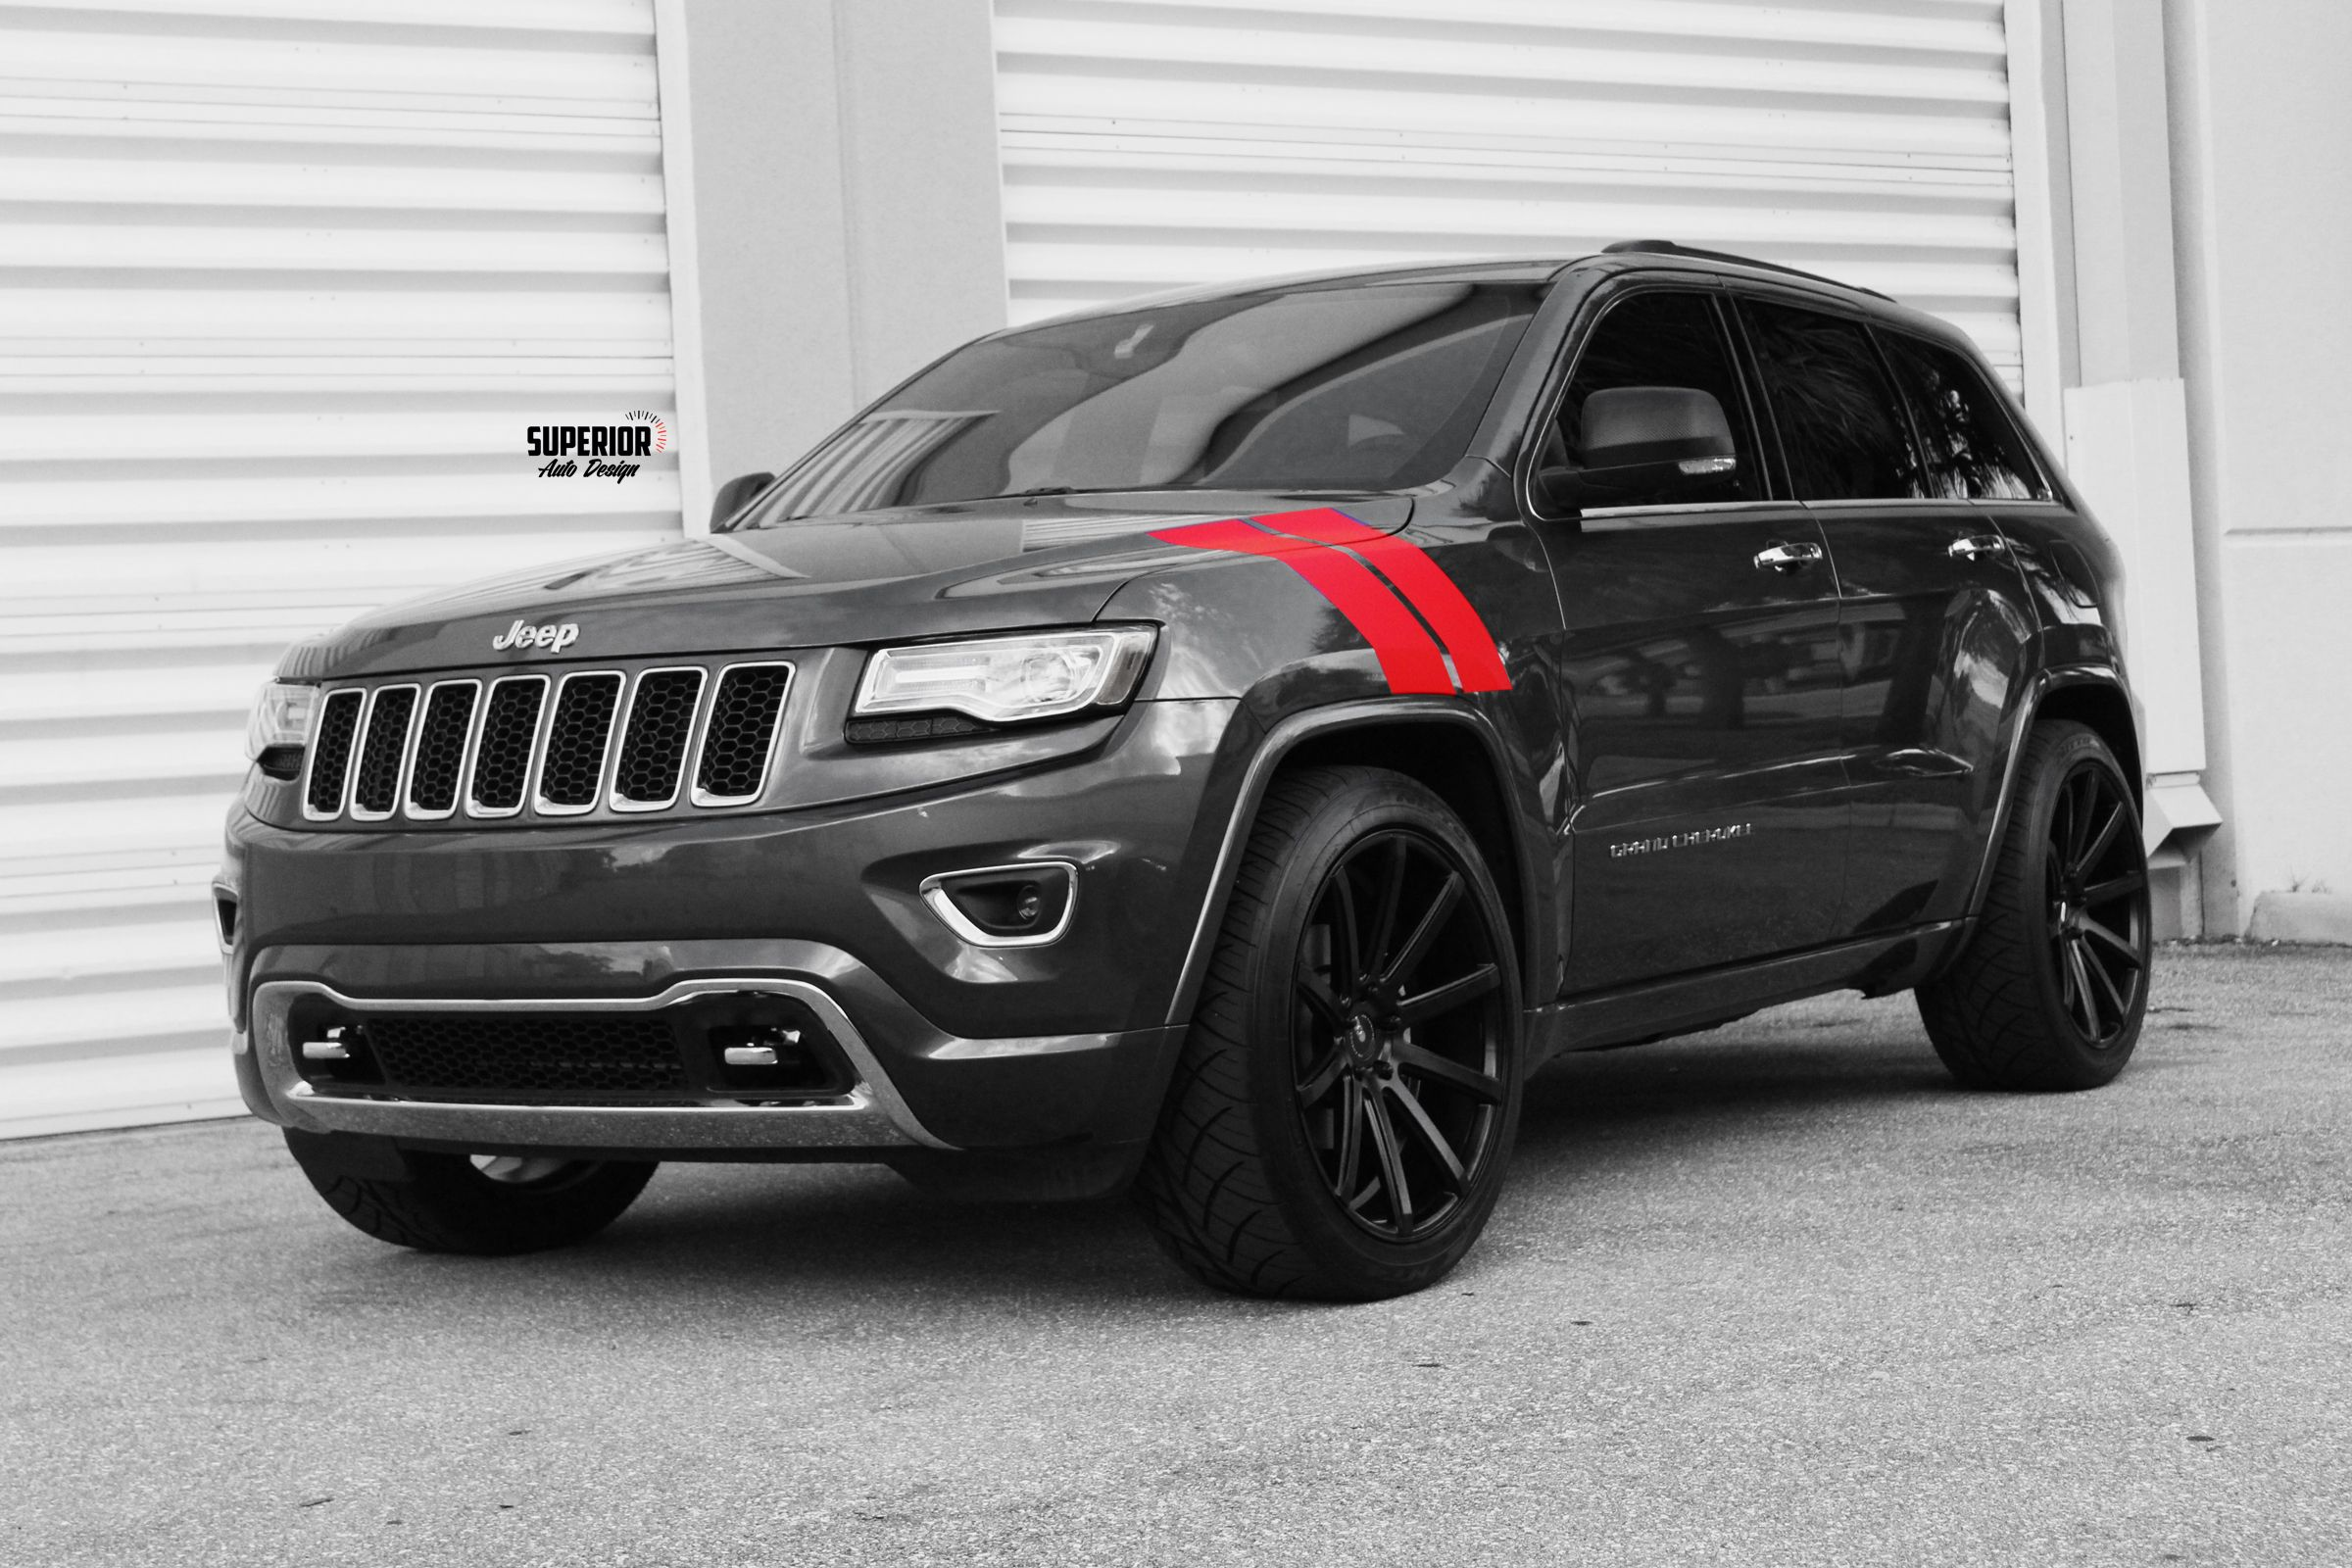 Best 25 jeep grand cherokee limited ideas on pinterest grand cherokee limited jeep grand cherokee and new jeep grand cherokee